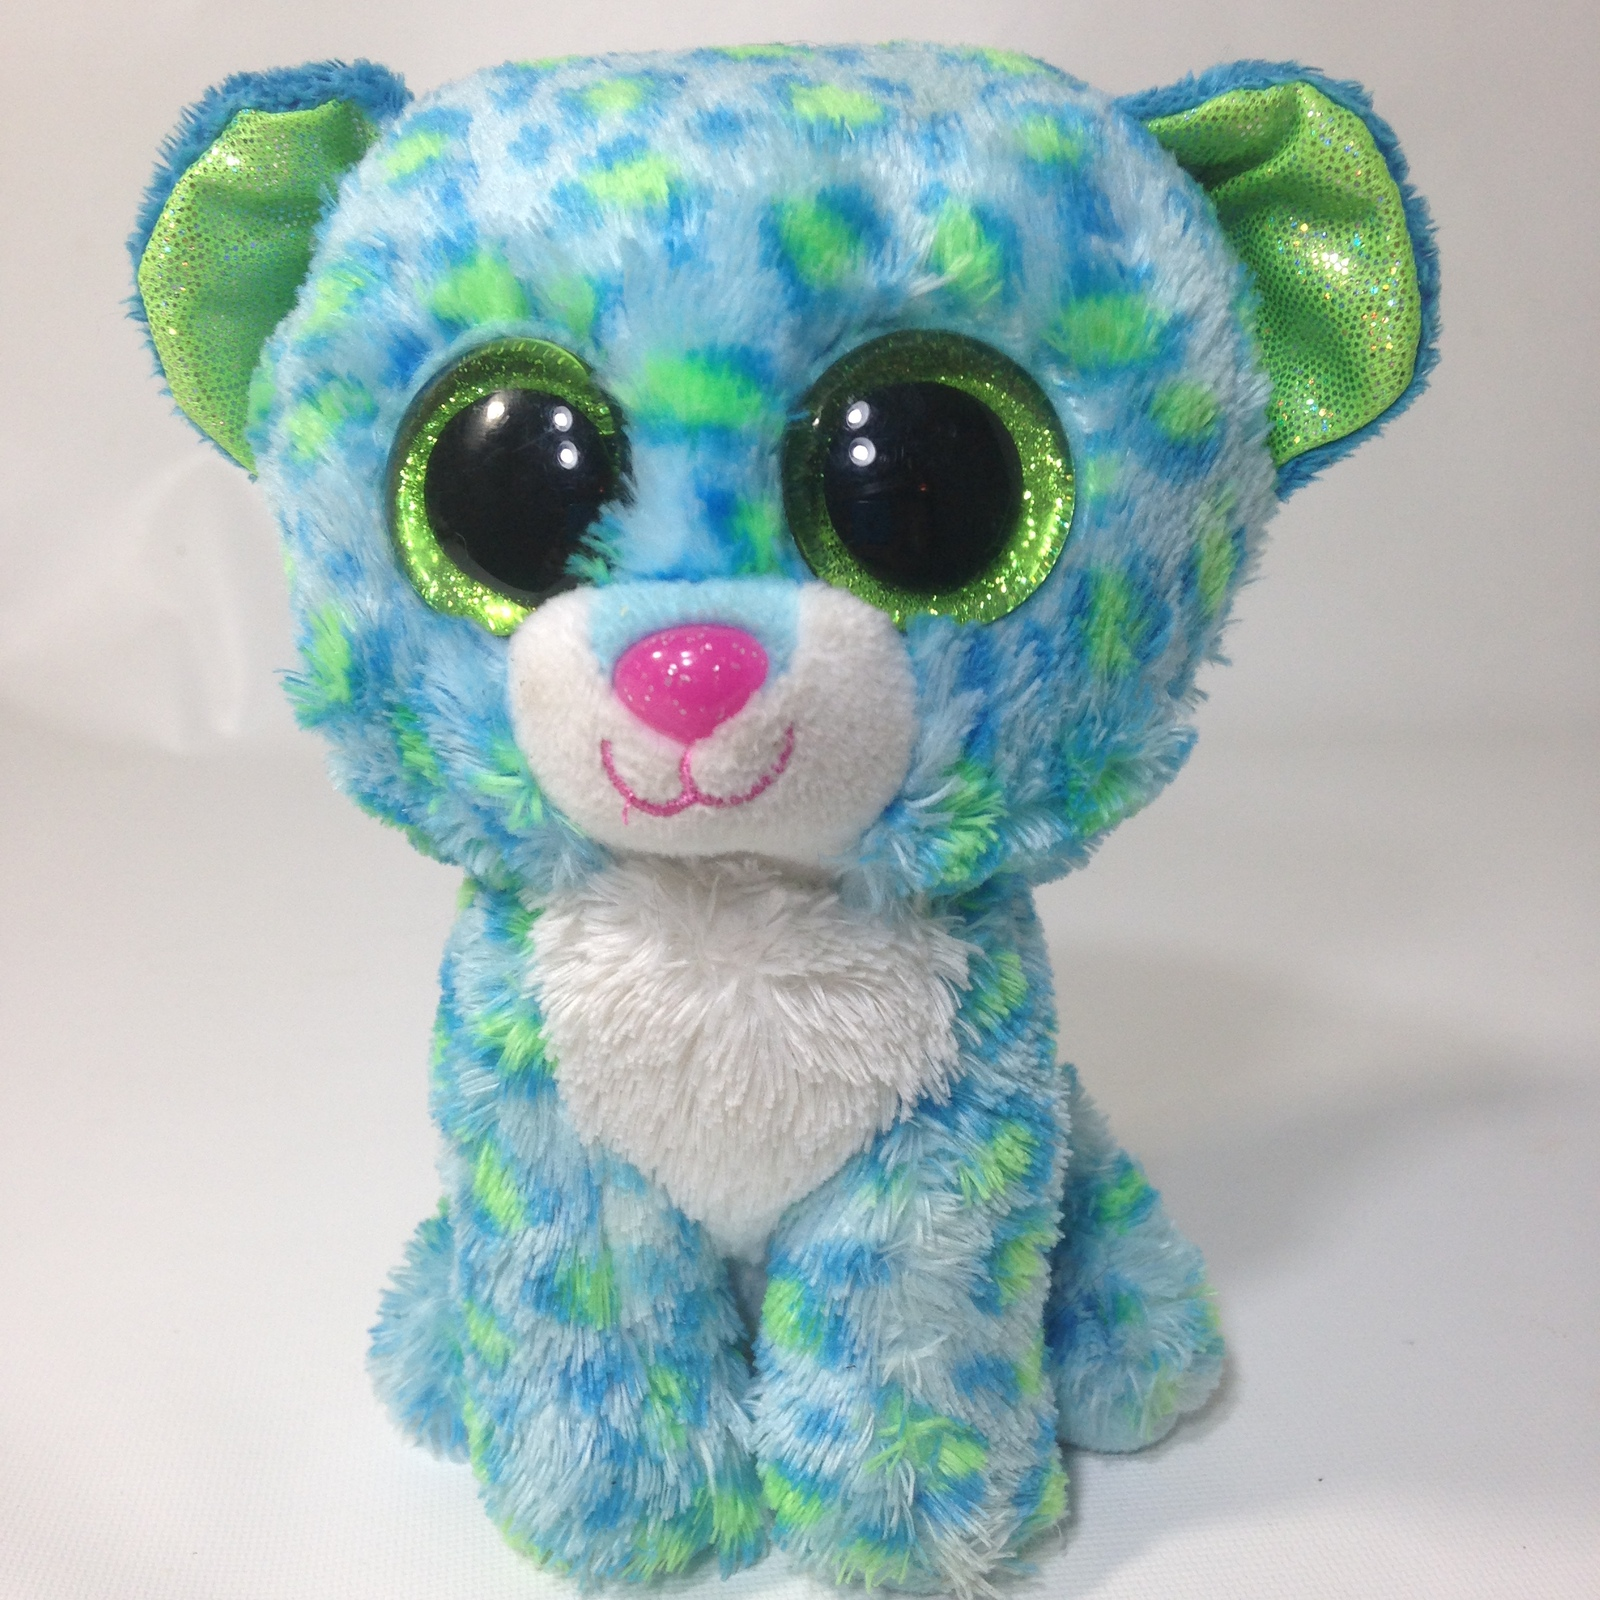 ... 50 similar items. Ty leona leopard cat beanie boos 6 blue green plush  stuffed animal kitten 1 022166d09ea8